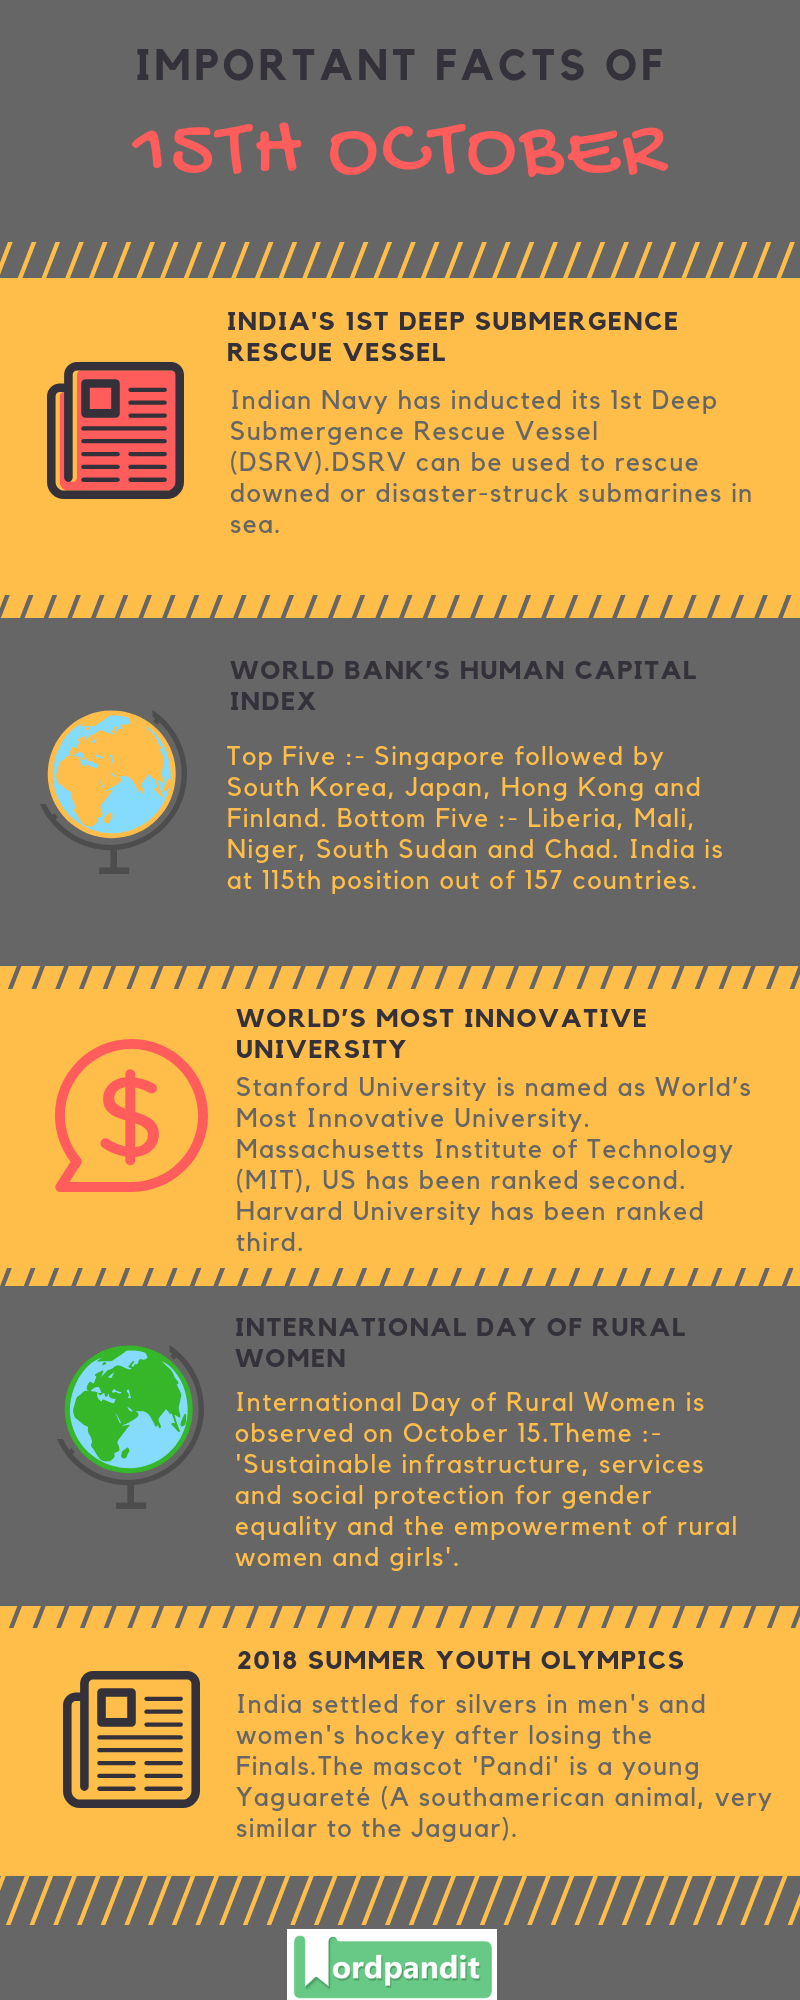 Daily Current Affairs 15 October 2018 Current Affairs Quiz 15 October 2018 Current Affairs Infographic